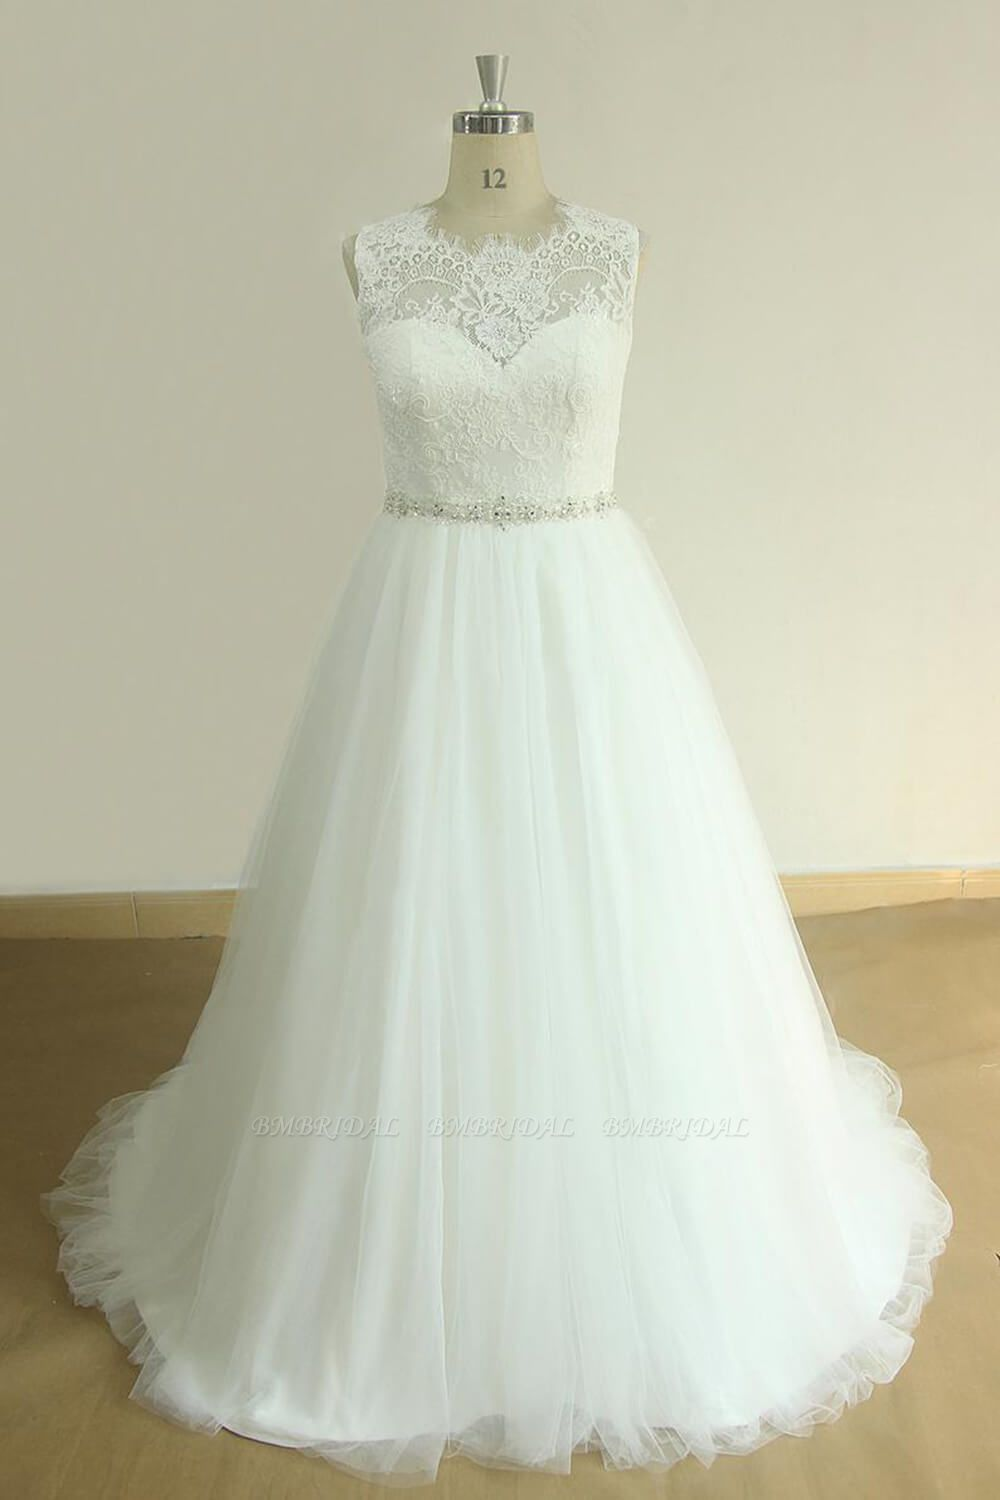 BMbridal Unique Jewel Sleeveless Lace Wedding Dresses White A-line Tulle Bridal Gowns On Sale